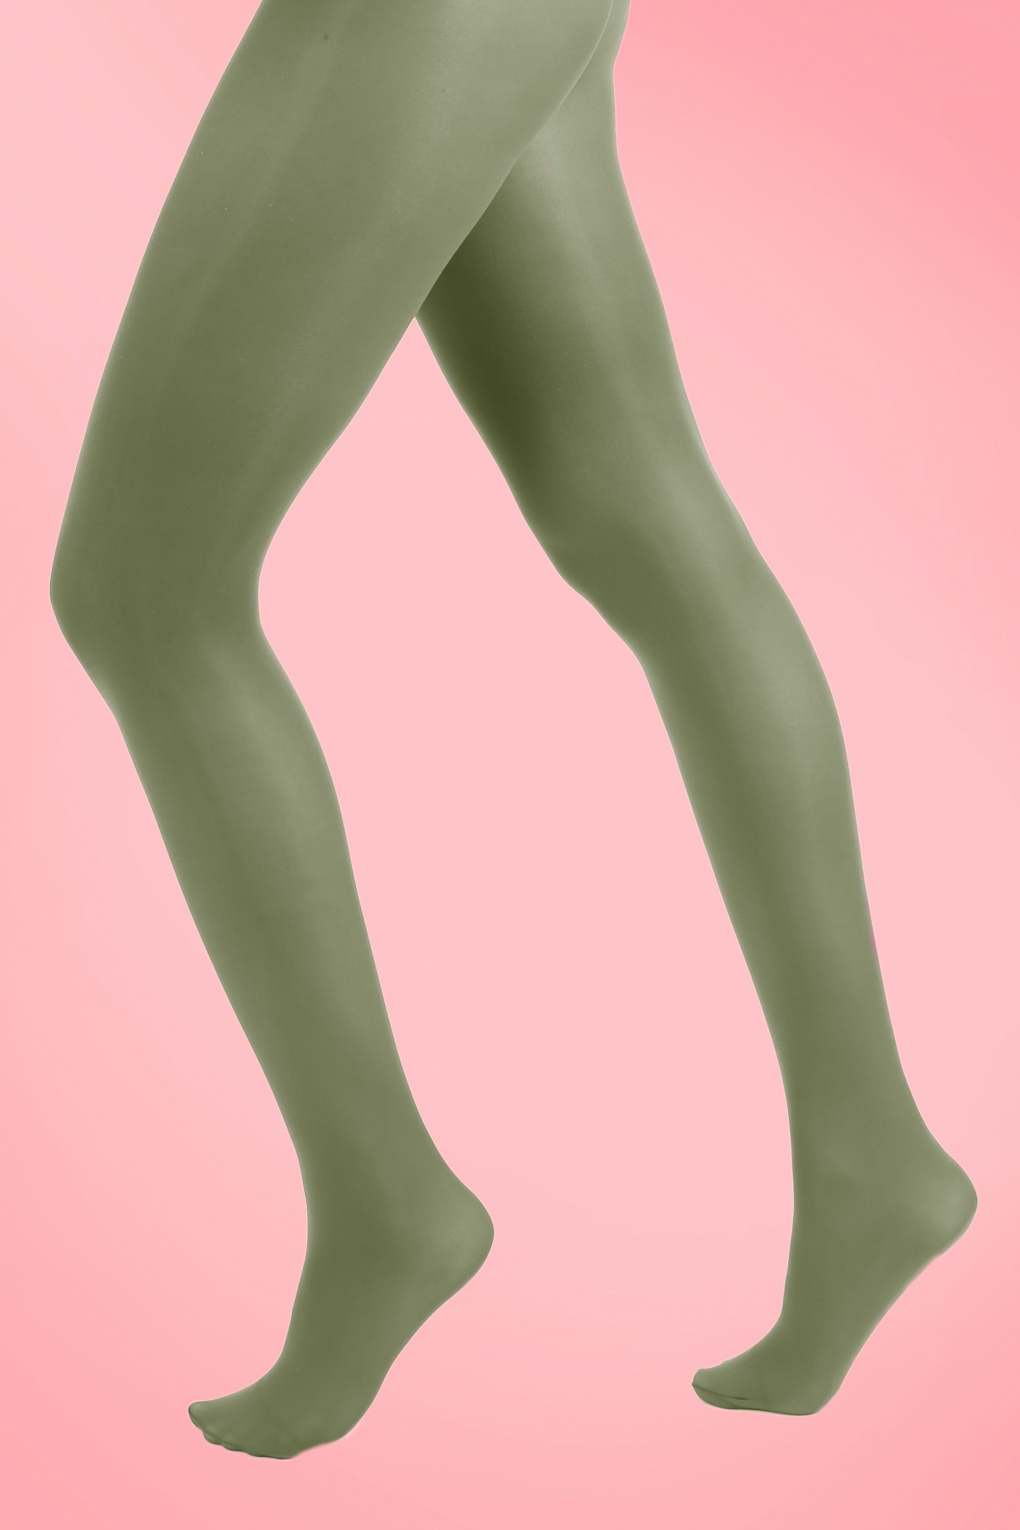 1960s Style Dresses, Clothing, Shoes UK 60s Opaque Tights in Leaf Green £7.14 AT vintagedancer.com